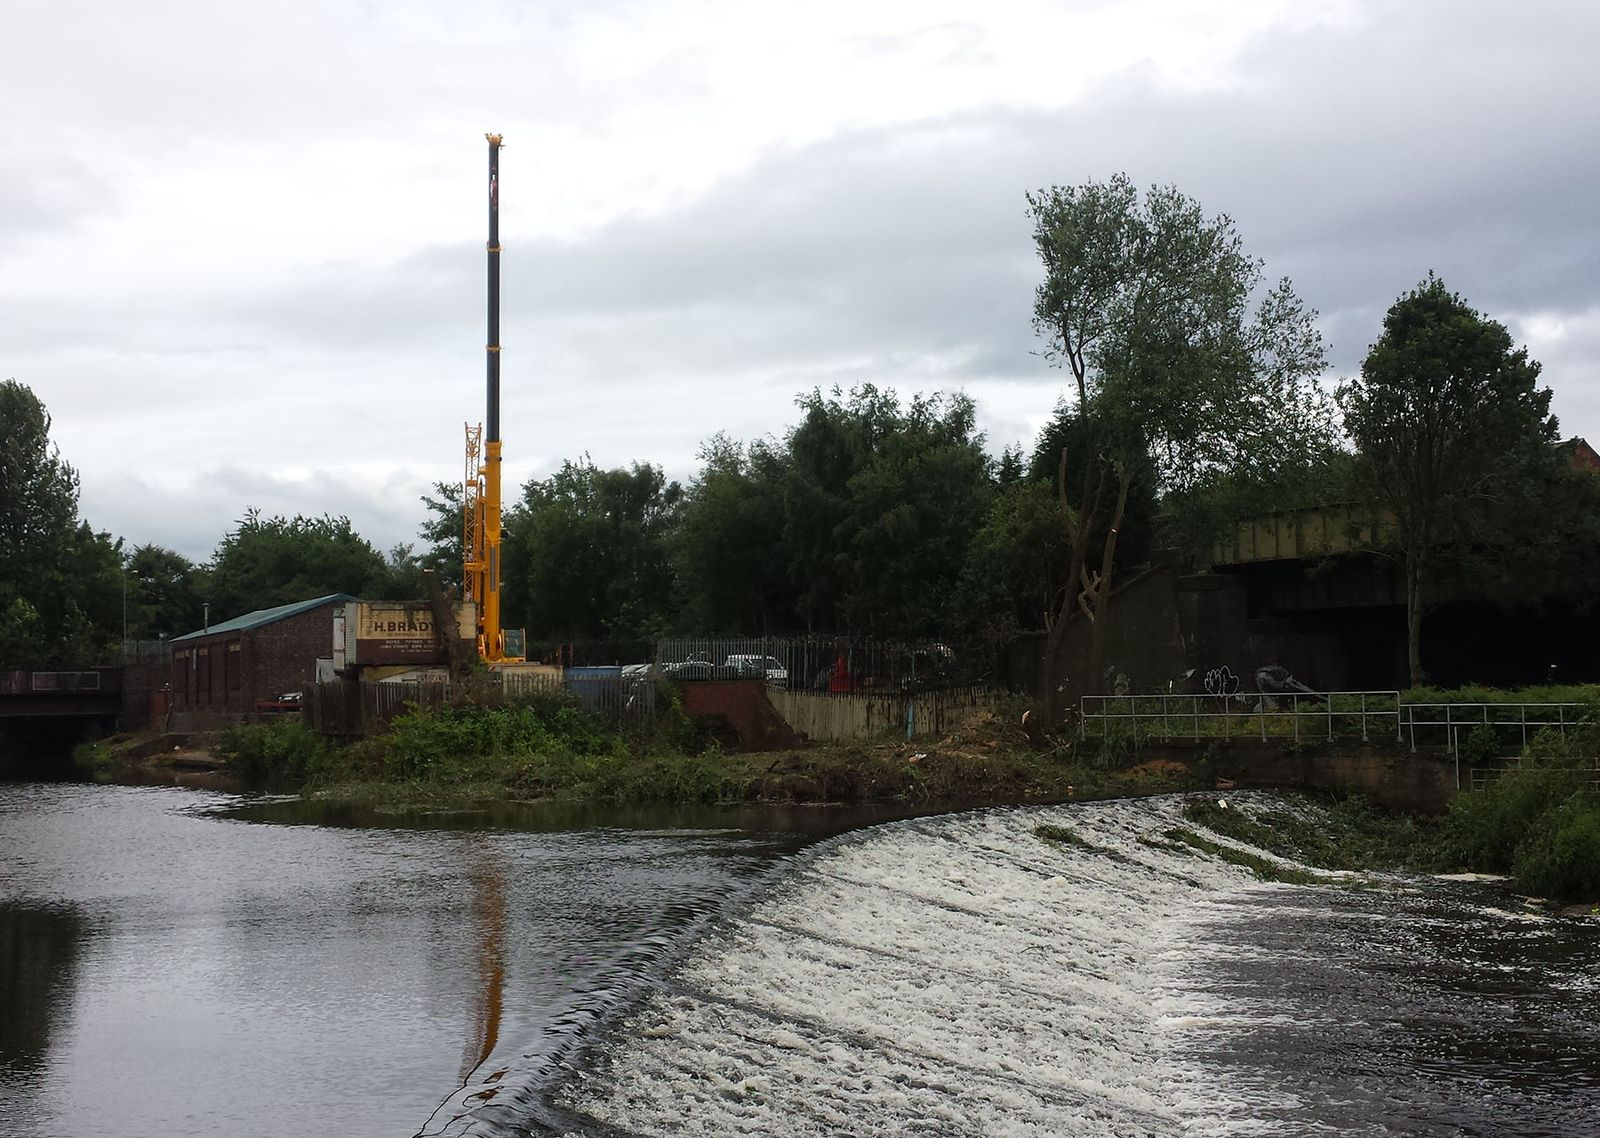 Lower Don Valley, crane, tree work, arboriculture, bank clearance, flood defence, flood alleviation